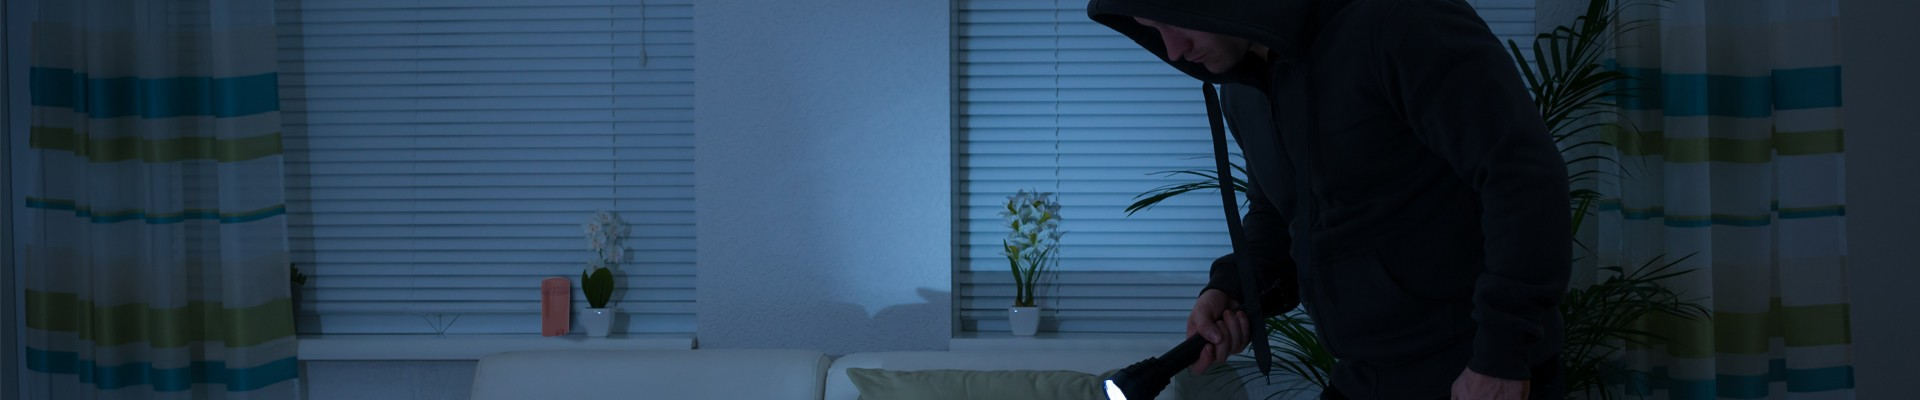 burglar in house at night with flowers and deodorant on window sills